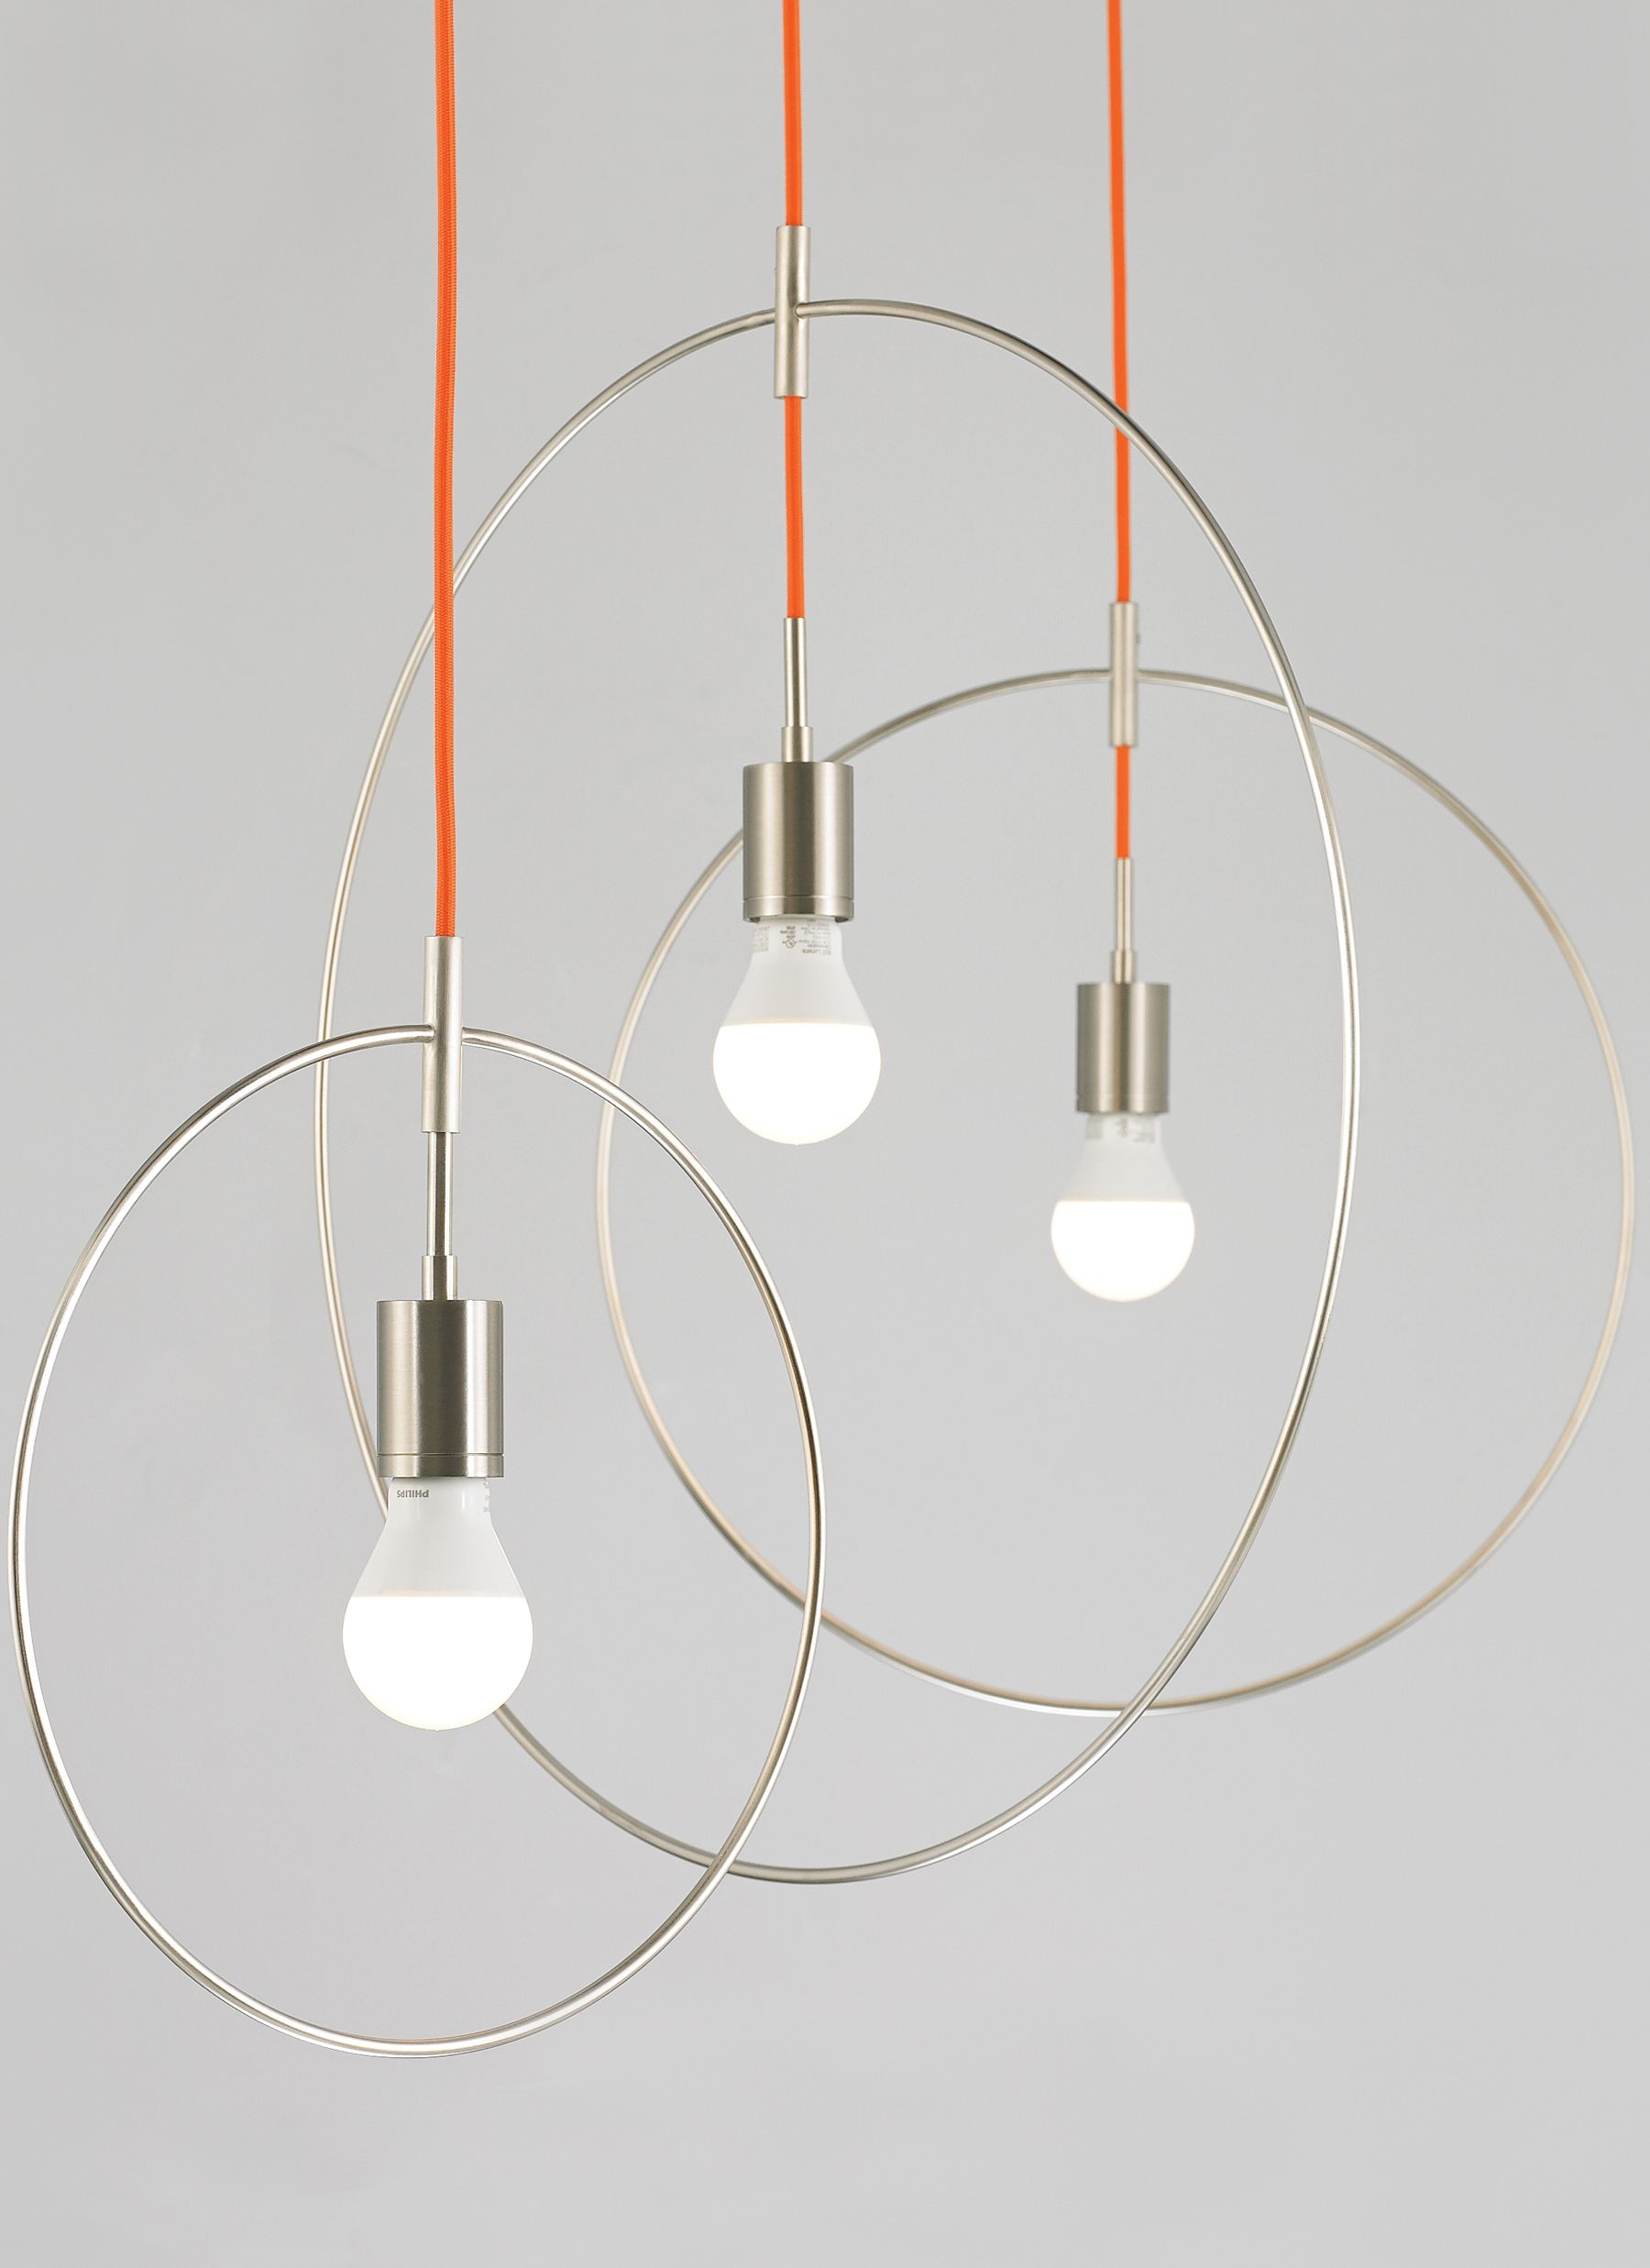 Available in three sizes, the Locus pendant light